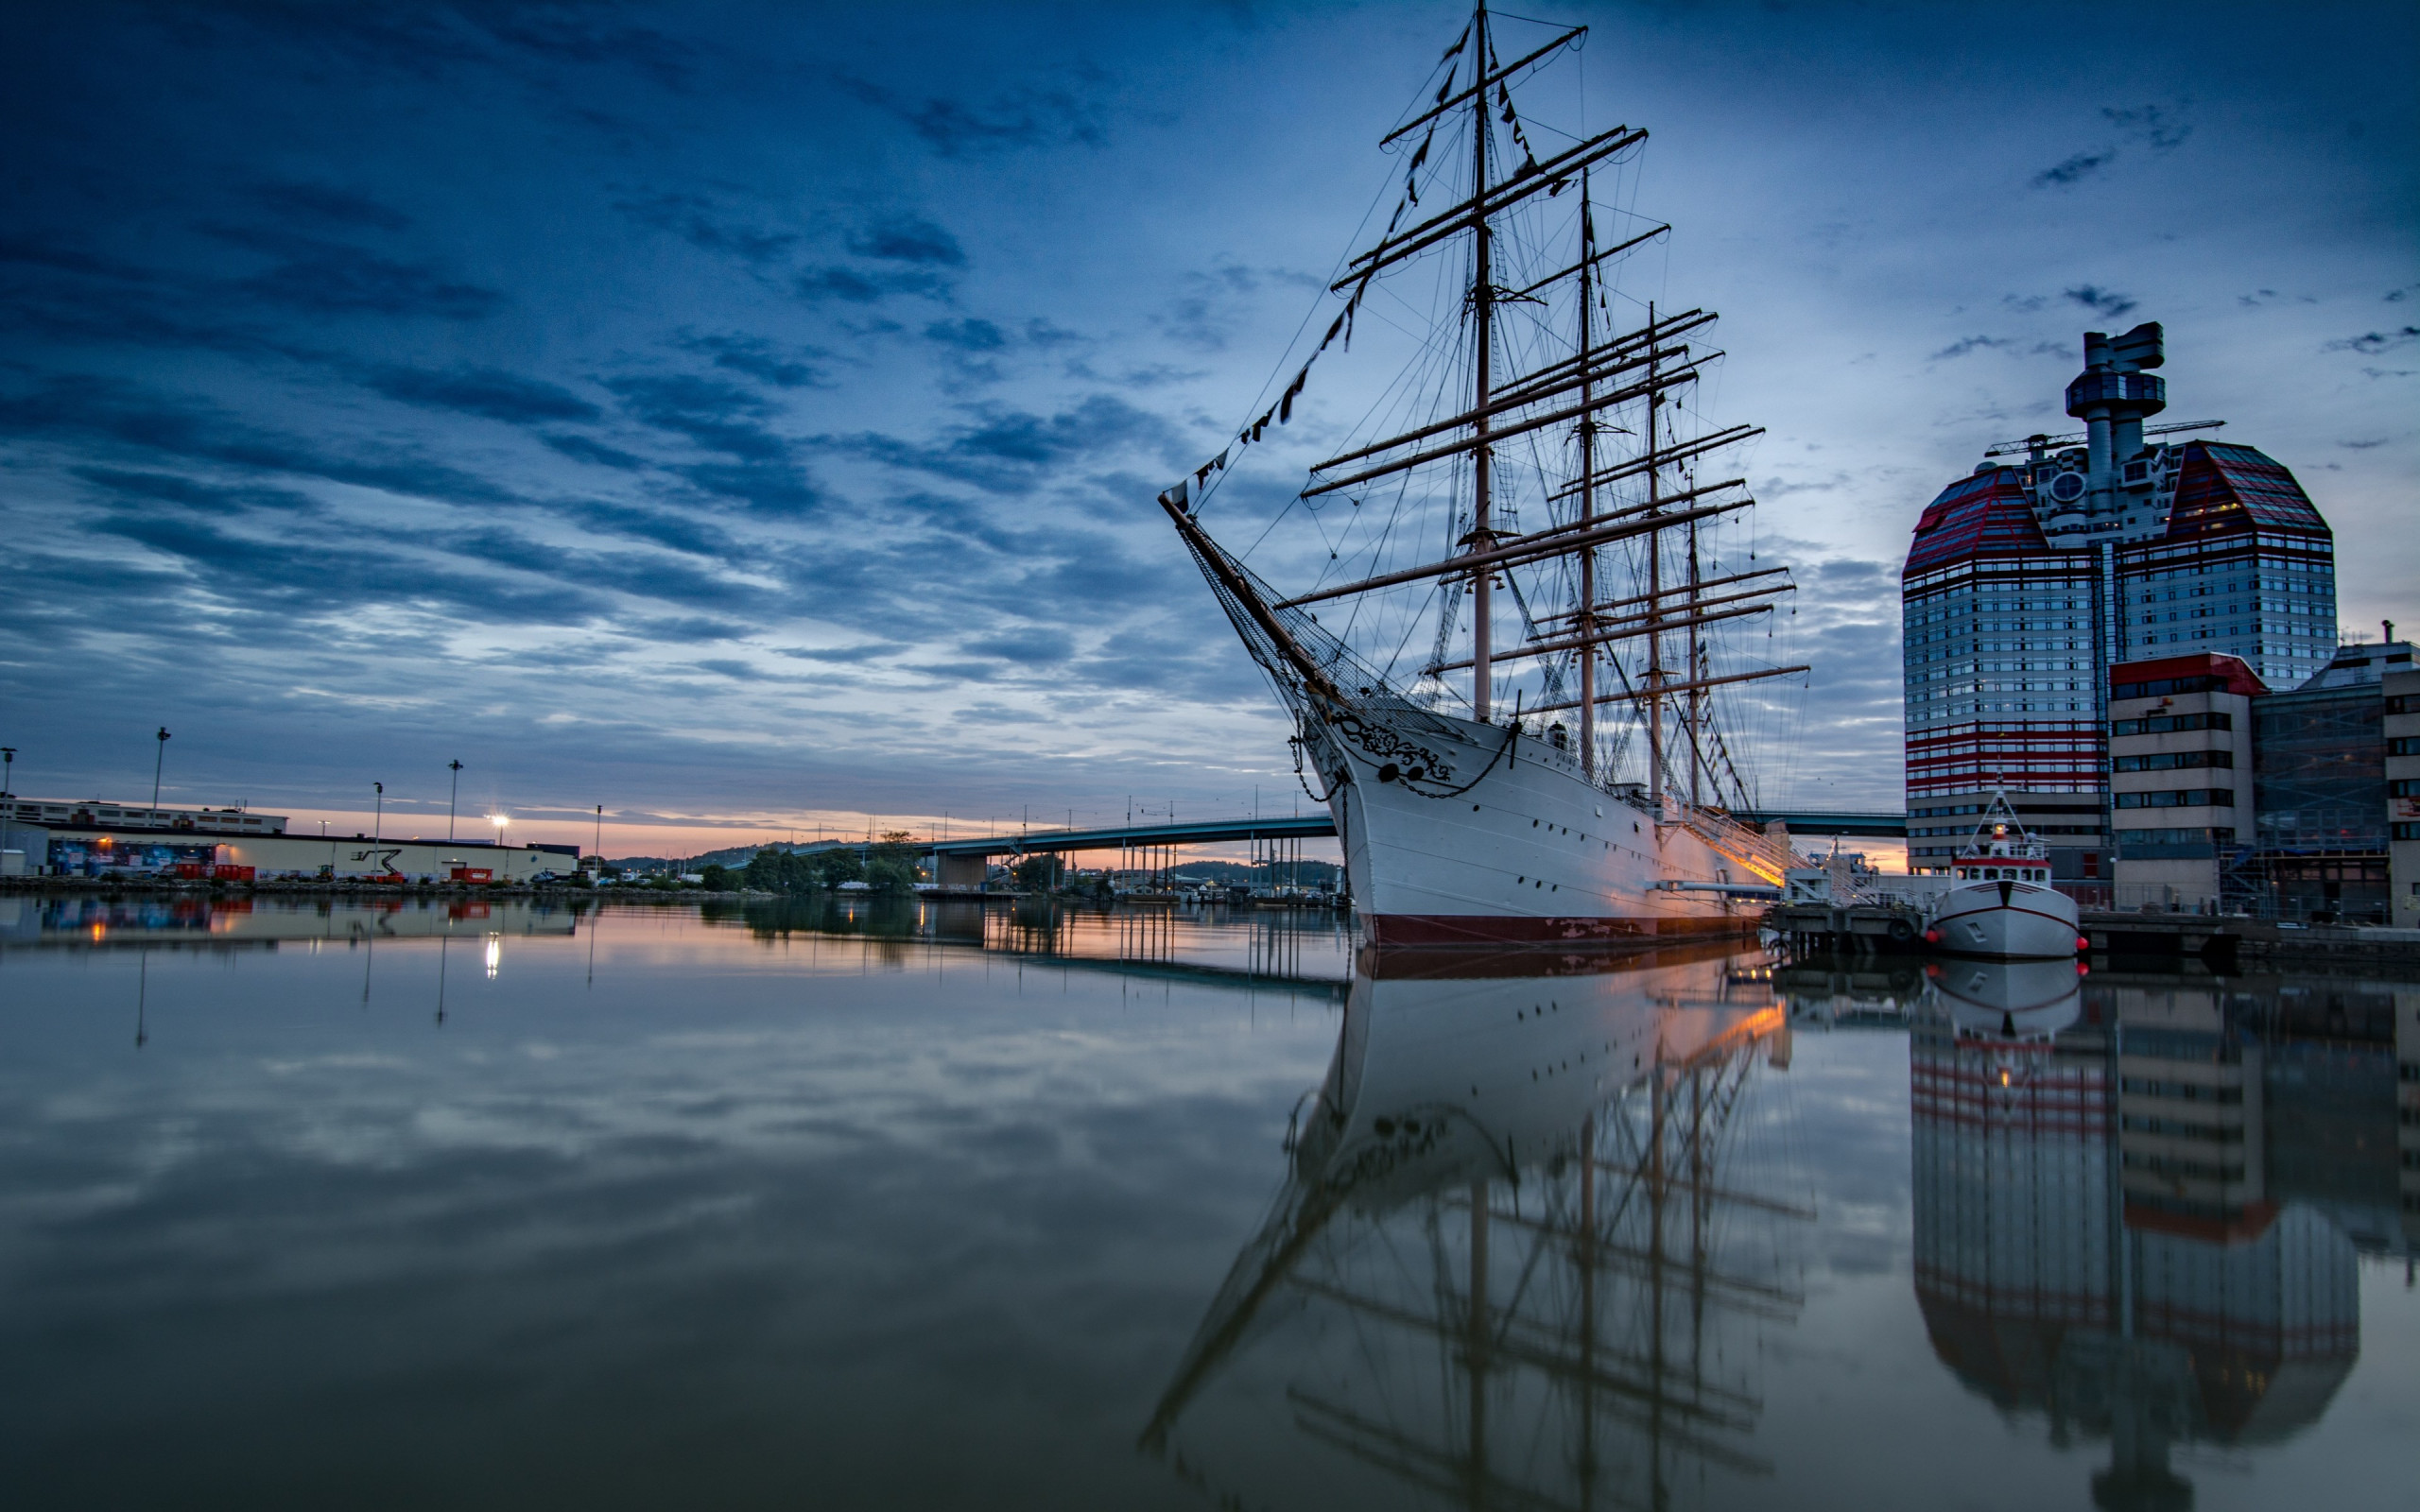 Historic wooden sailing ship in Gothenburg Harbour | 2560x1600 wallpaper